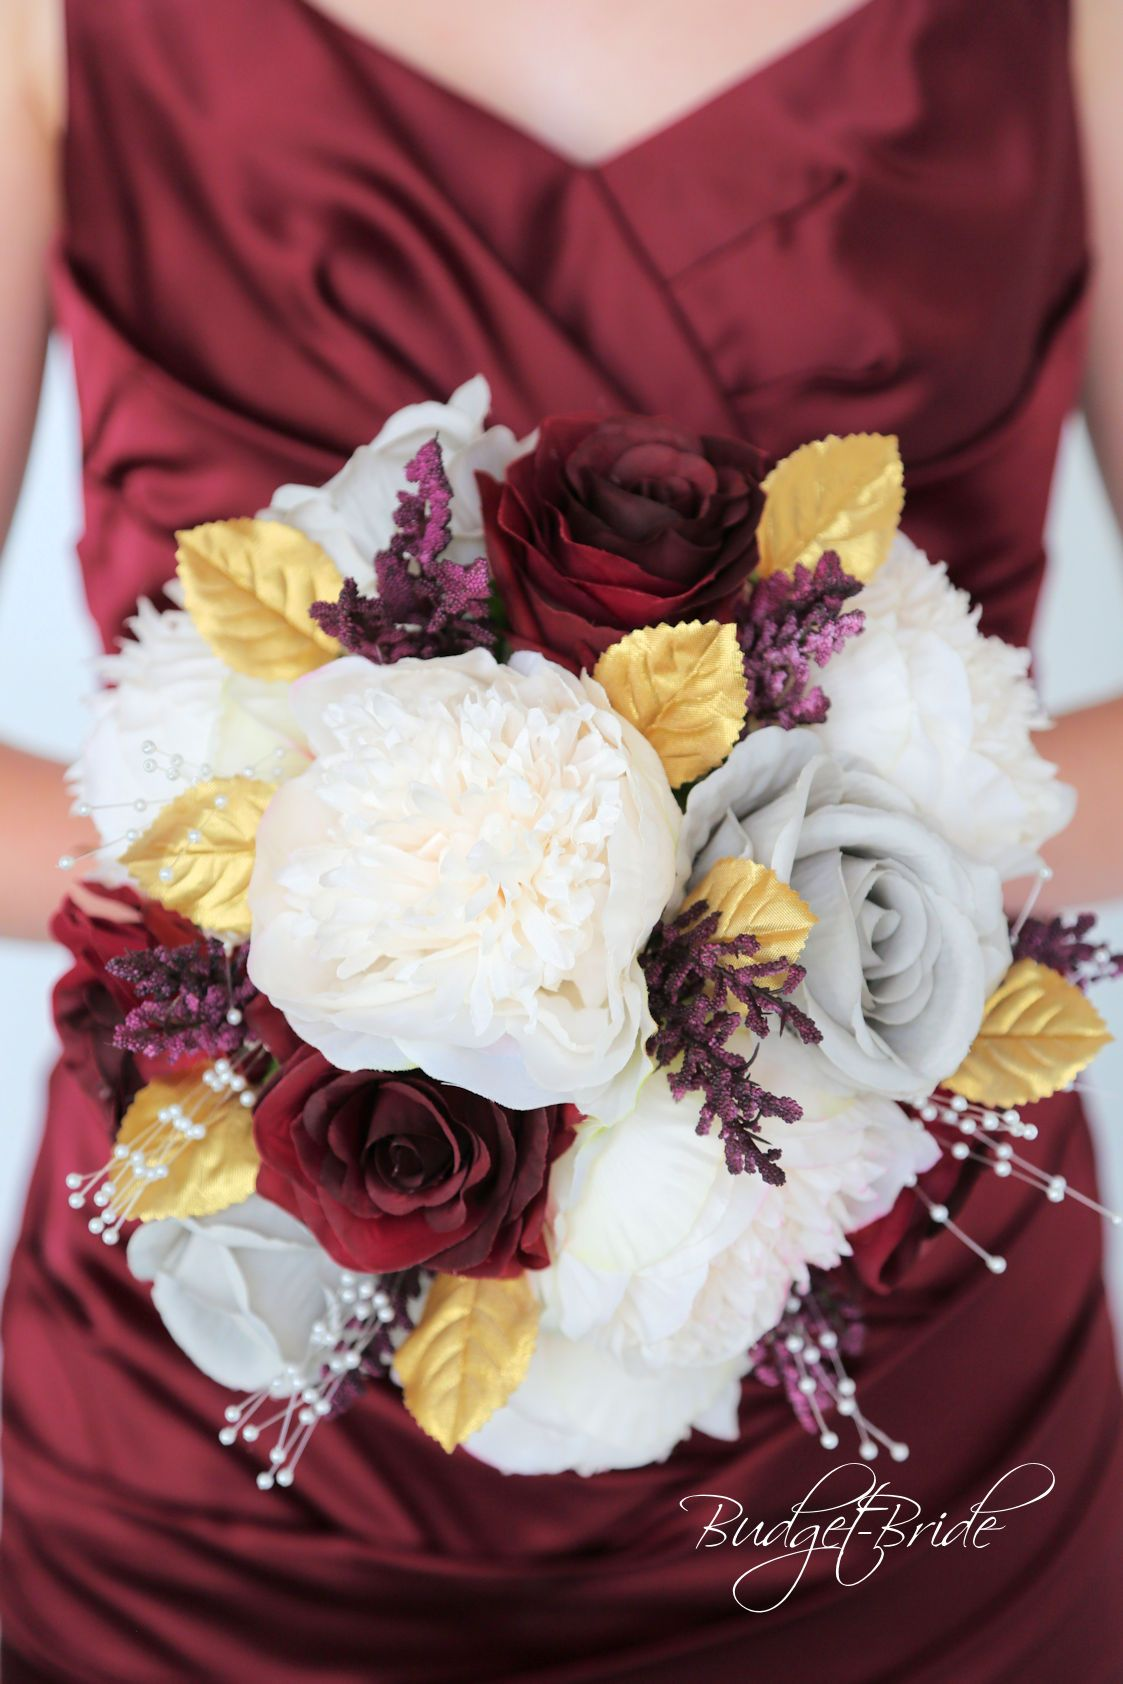 Davids bridal wine wedding bouquet with wine roses grey roses and davids bridal wine wedding bouquet with wine roses grey roses and ivory peonies with gold izmirmasajfo